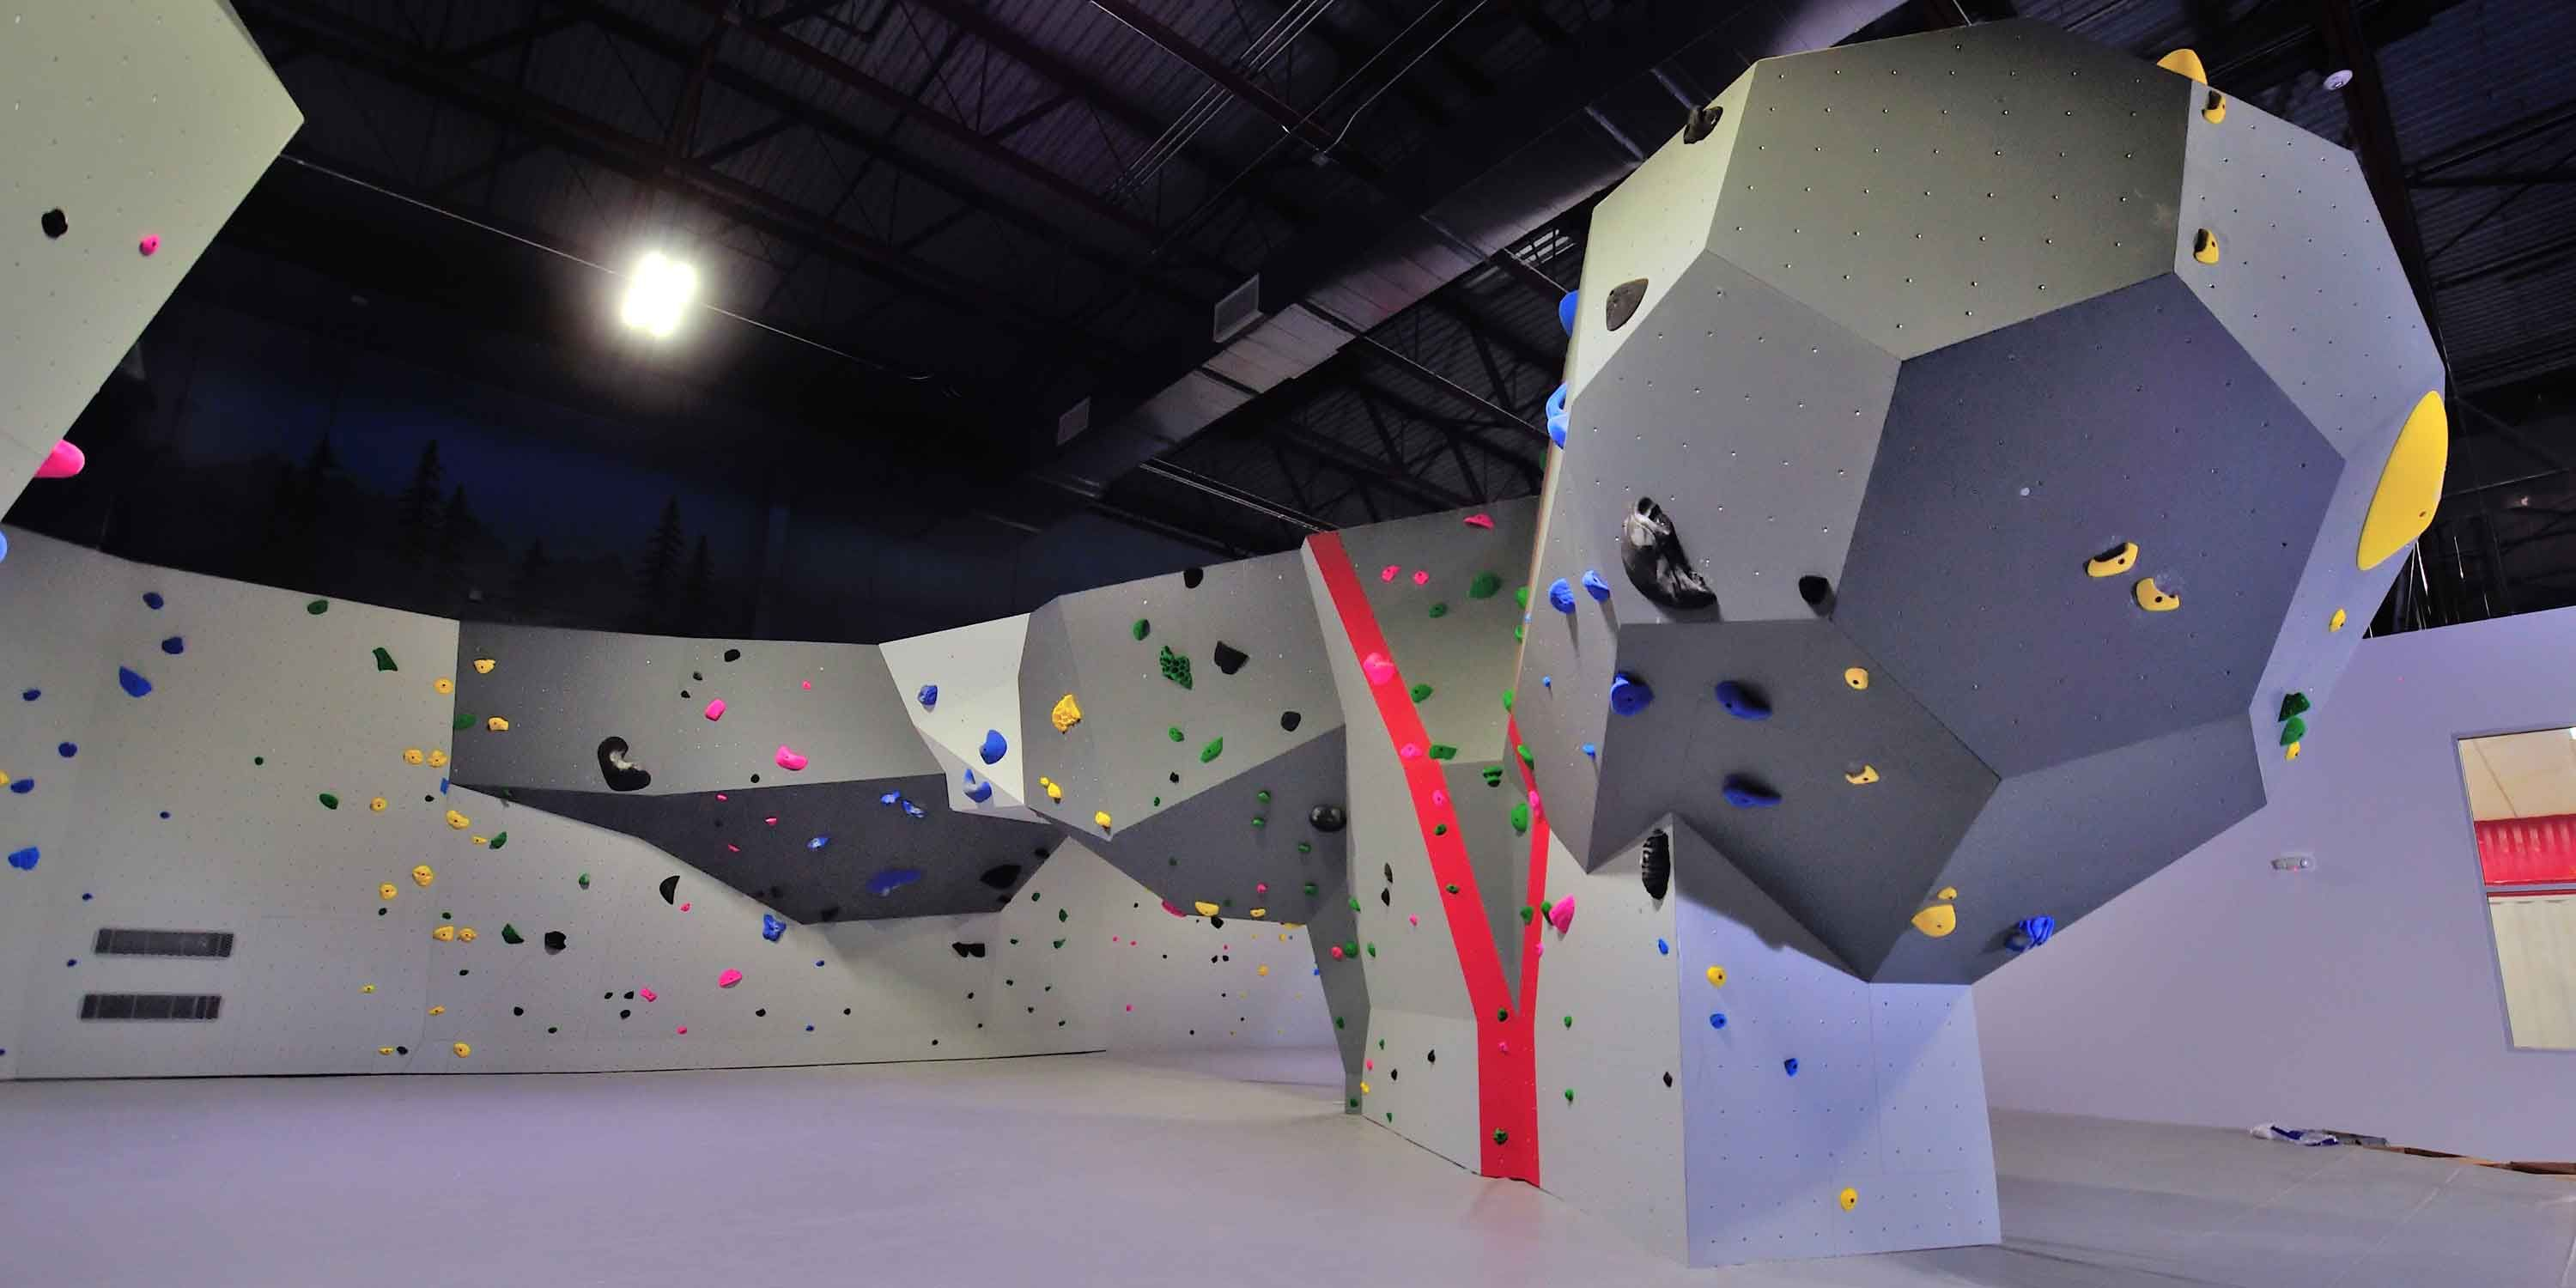 Pin By Hann On Climbing Wall Top Interior Design Firms House Painting Cost Indoor Bouldering